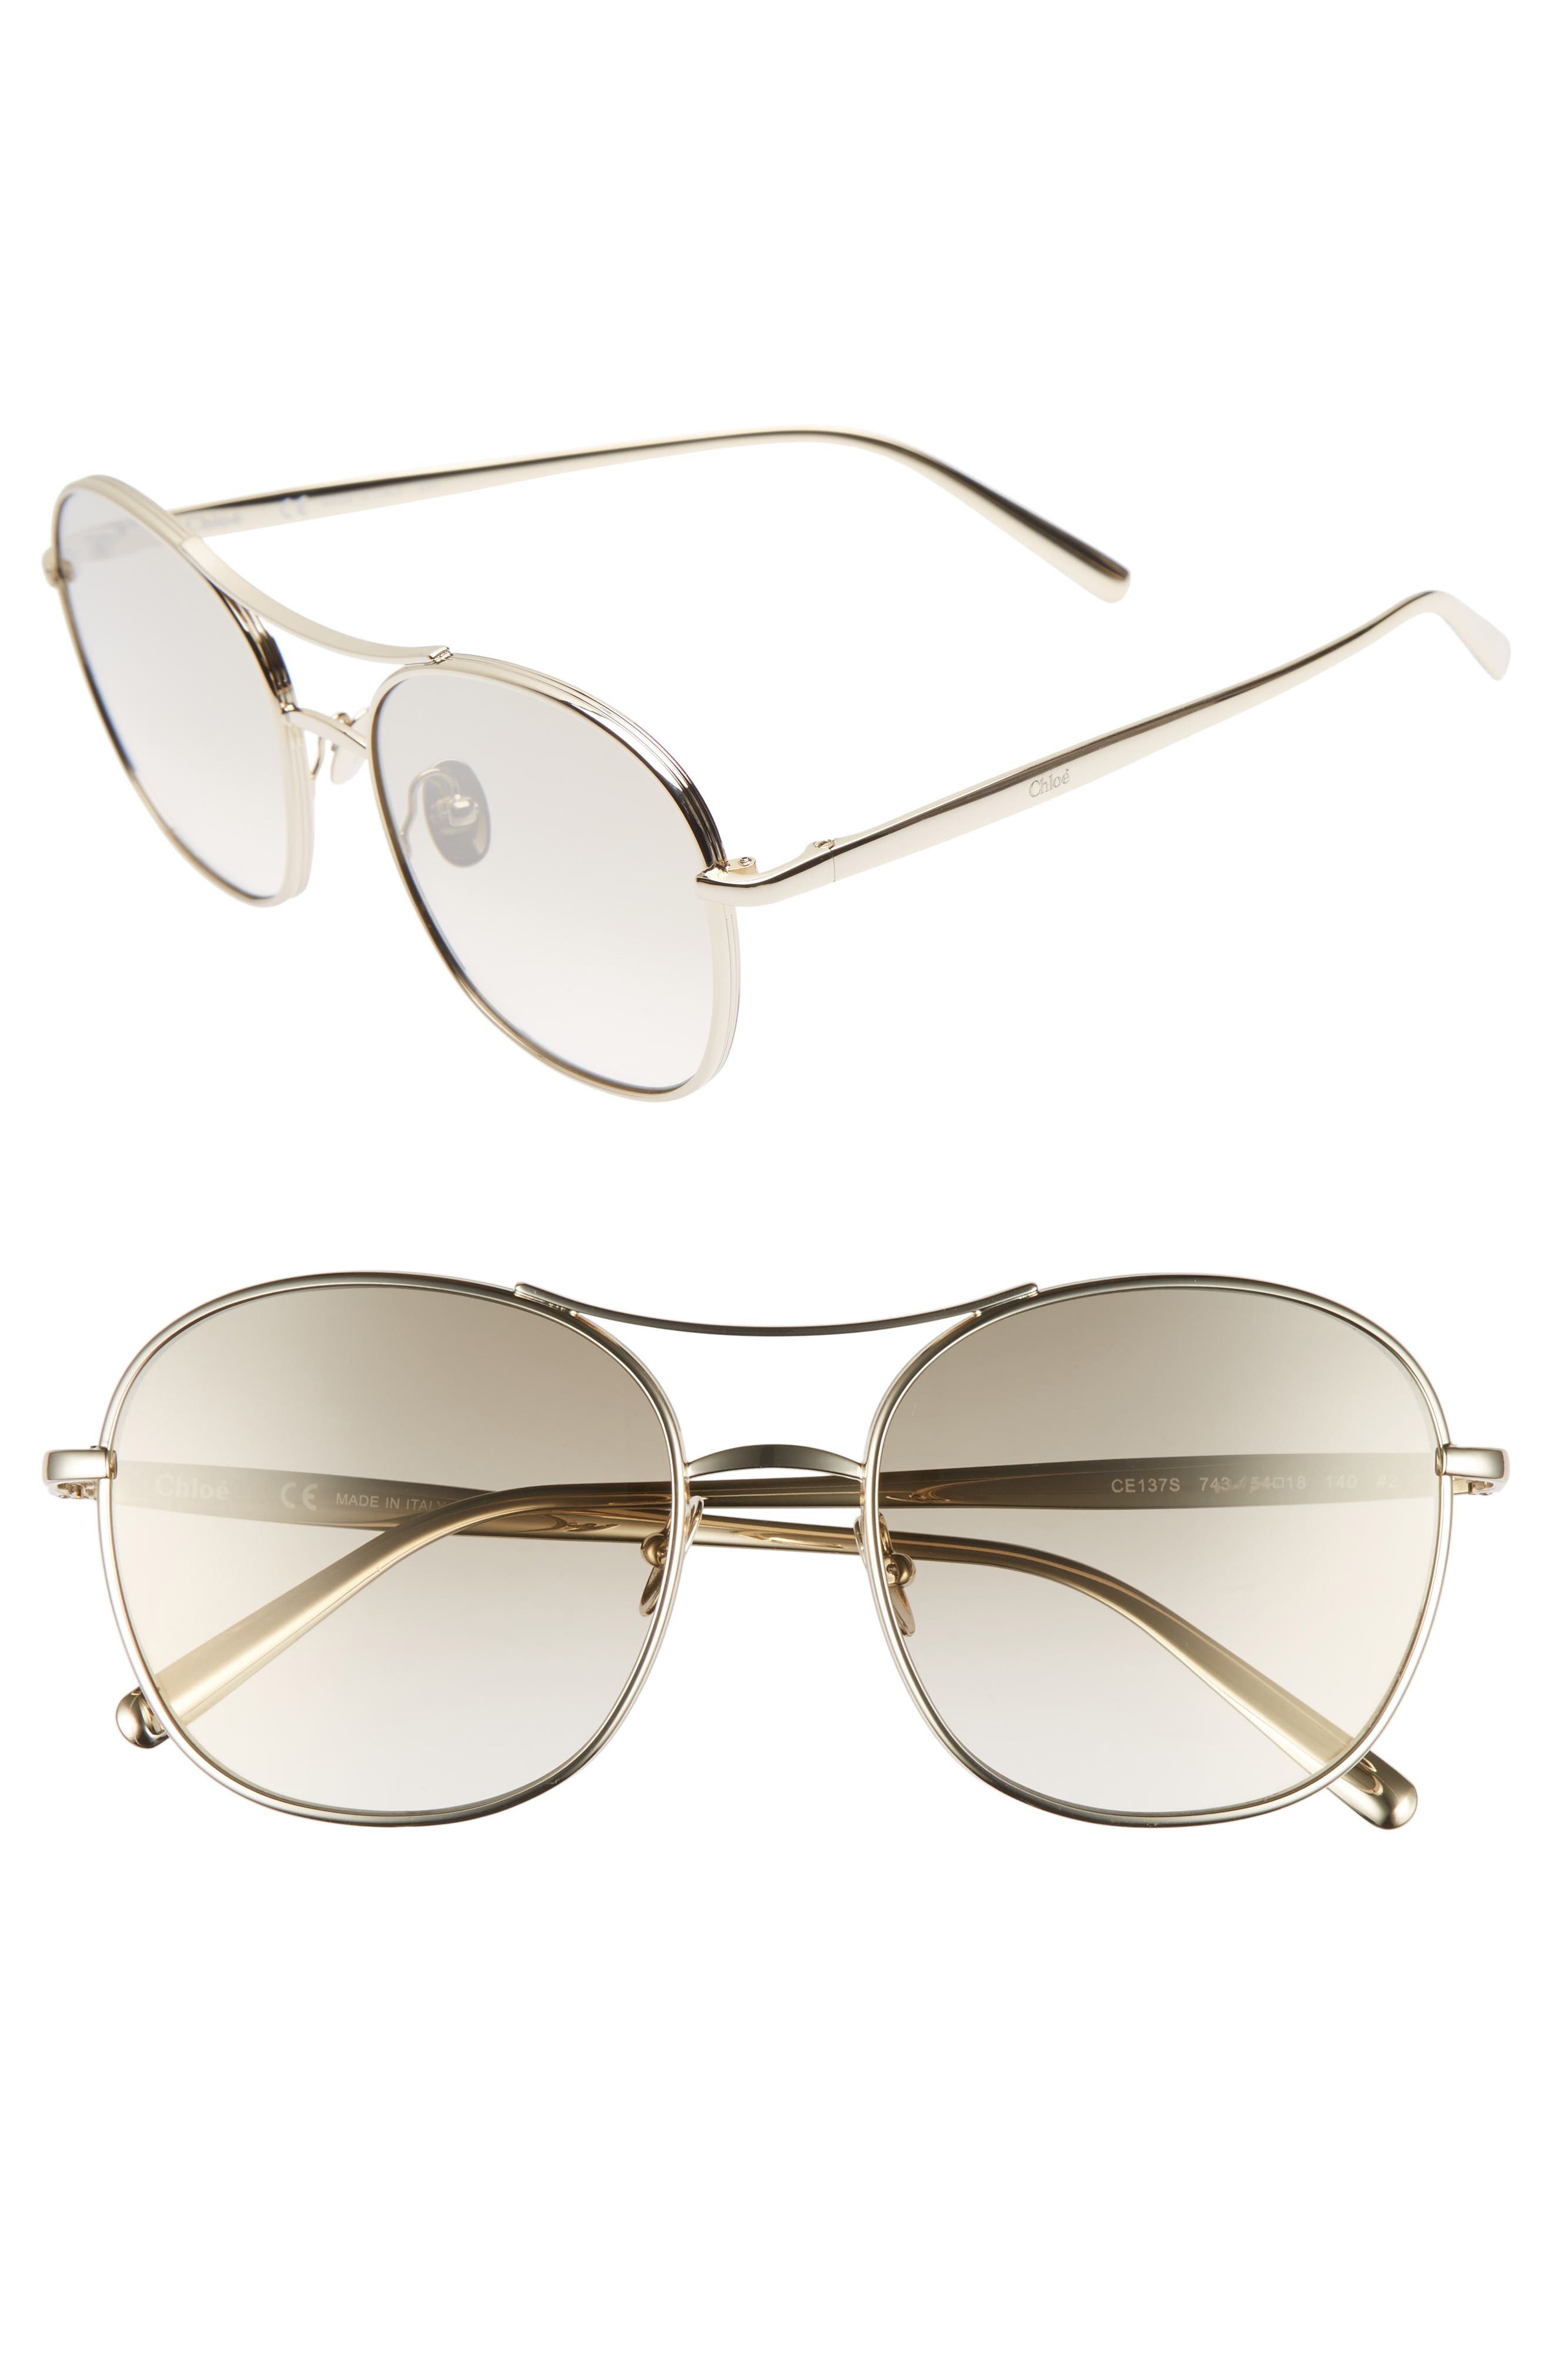 Main Image - Chloé 54mm Aviator Sunglasses